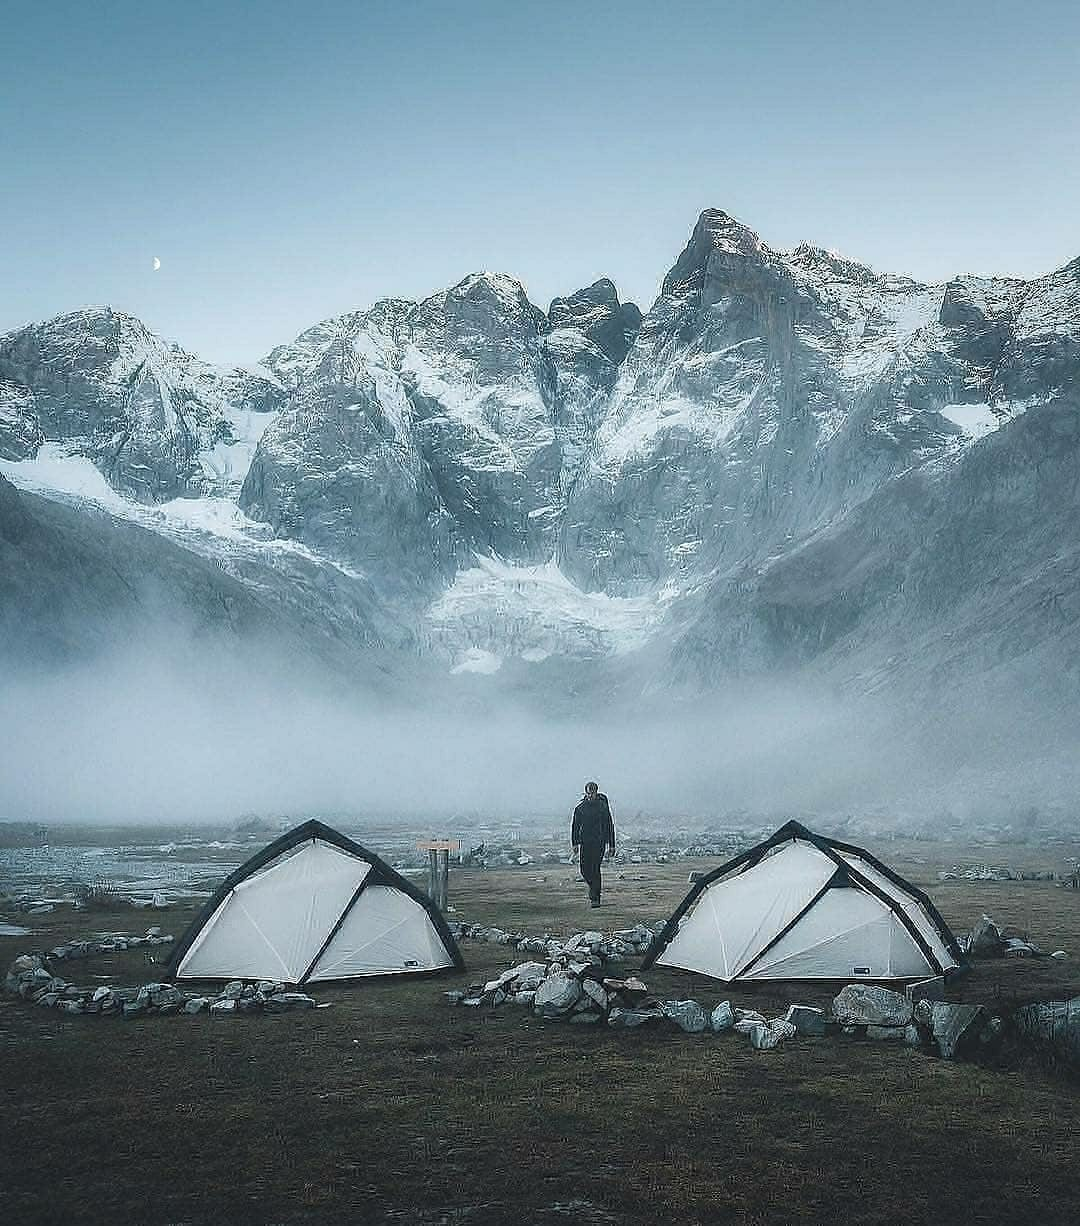 two tents in front of mountains